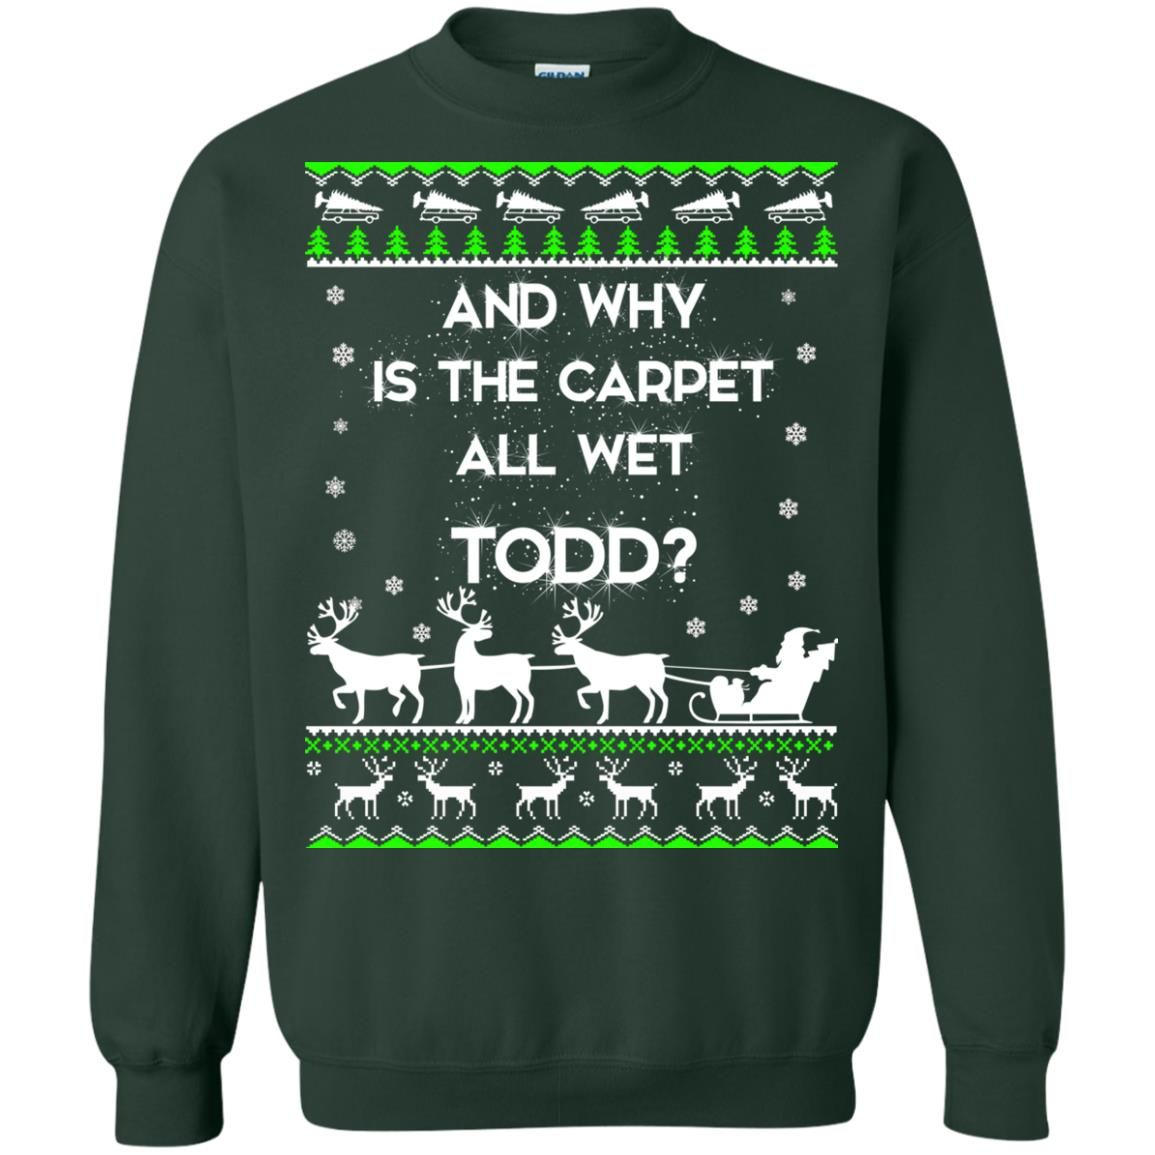 image 1610 - Christmas Vacation: And why is carpet all wet TODD ulgy sweater, hoodie